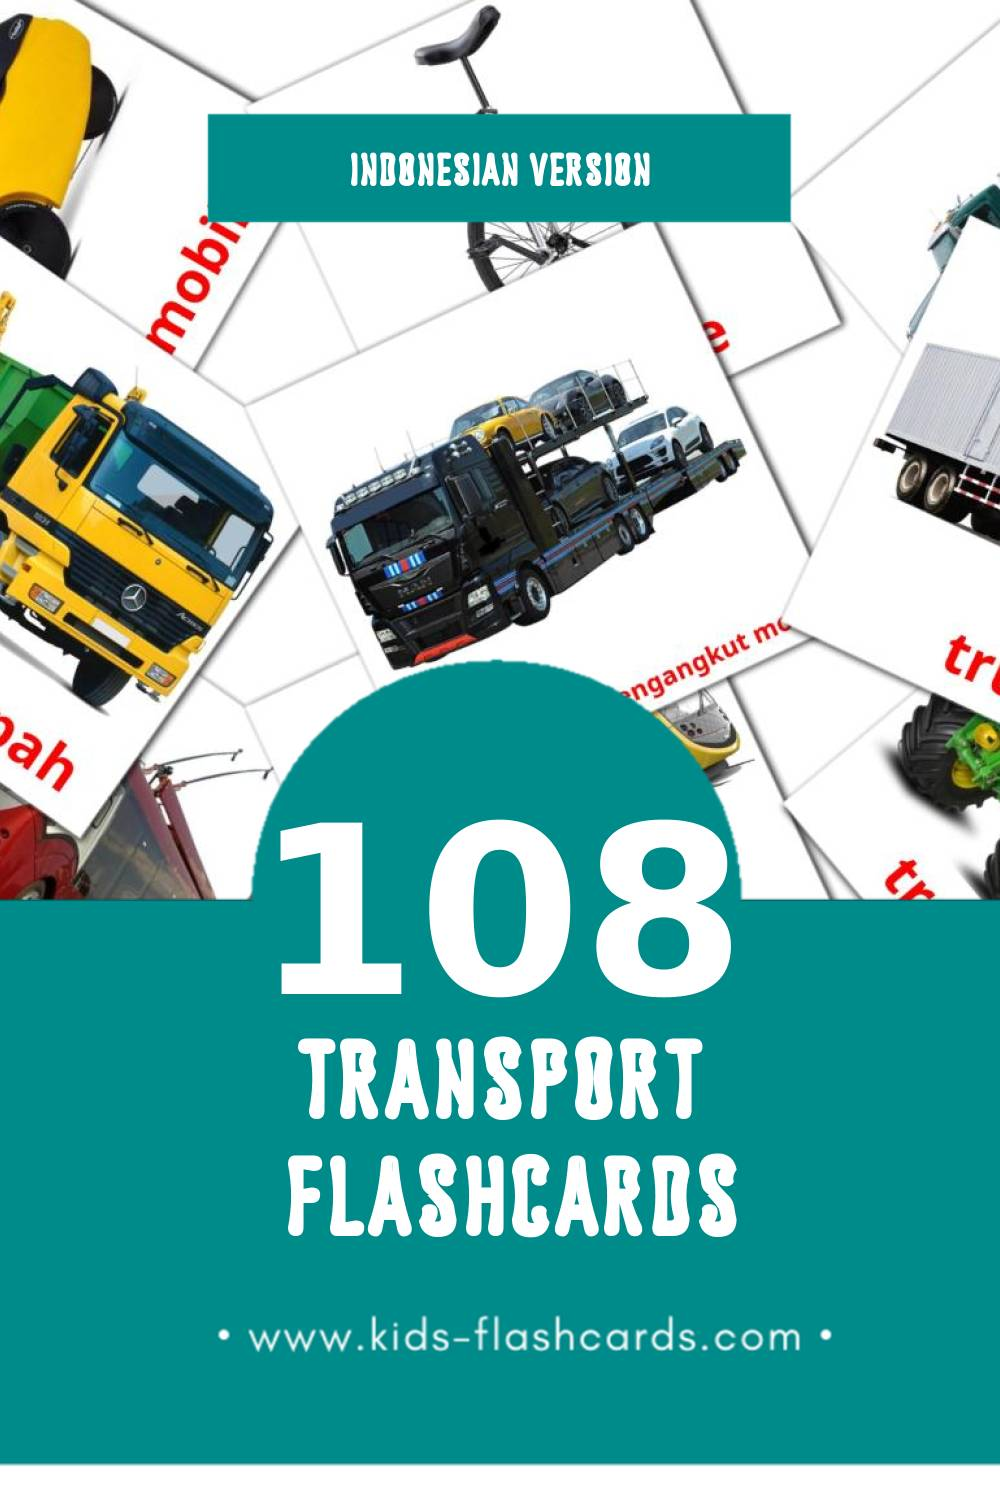 Visual Transportasi Flashcards for Toddlers (94 cards in Indonesian)